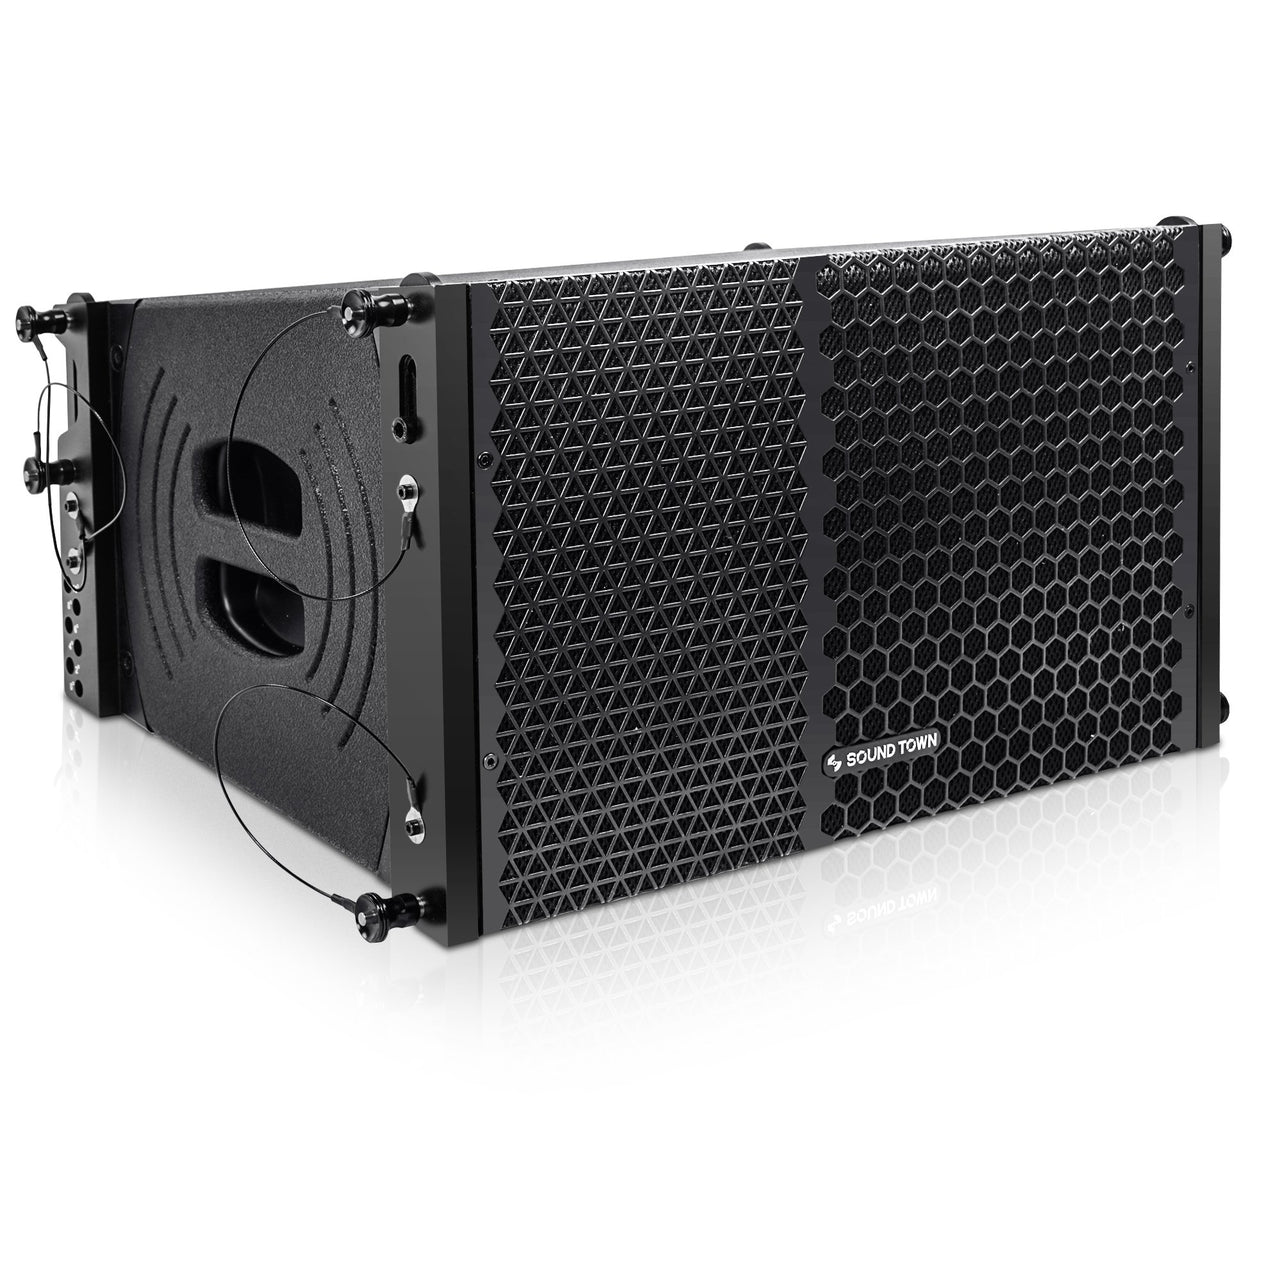 "Sound Town ZETHUS-110PW ZETHUS Series 10"" Powered Two-Way Line Array Loudspeaker System with Titanium Compression Driver, Black - Right Panel"